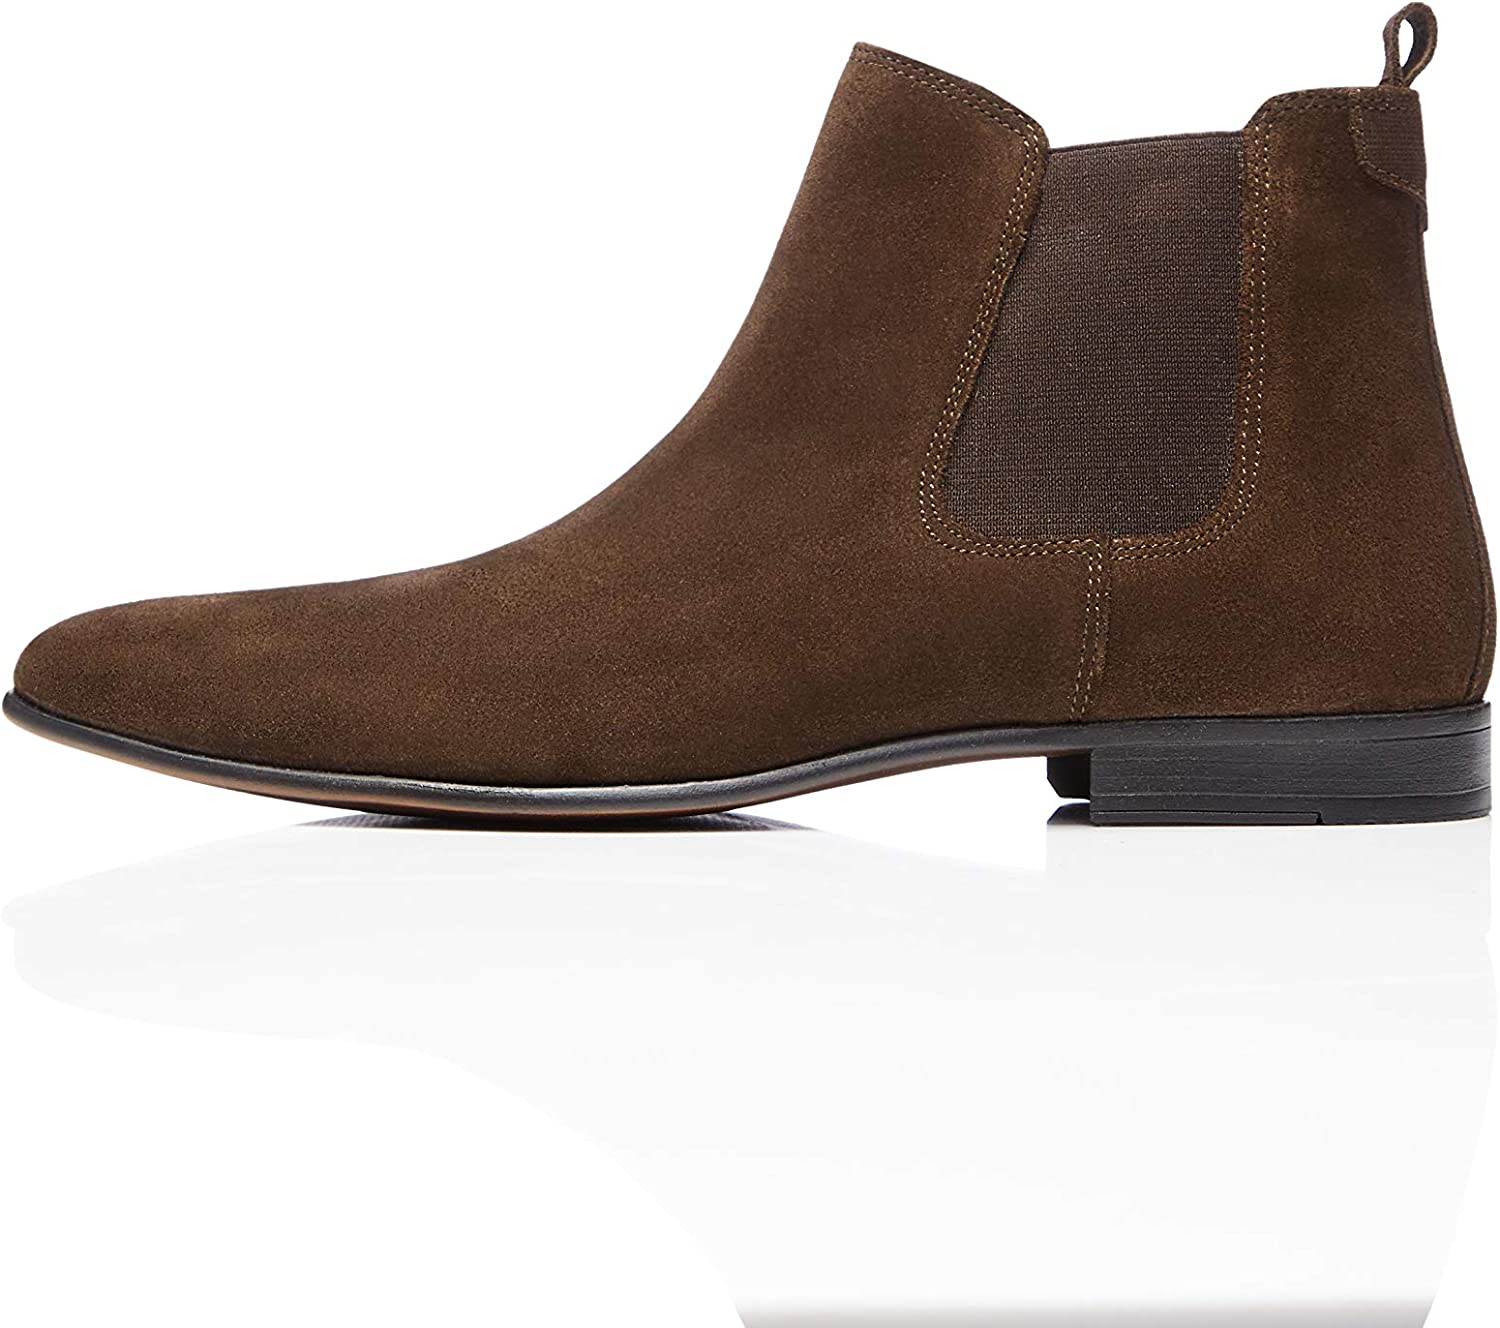 Marque Amazon find. Homme Chelsea boots